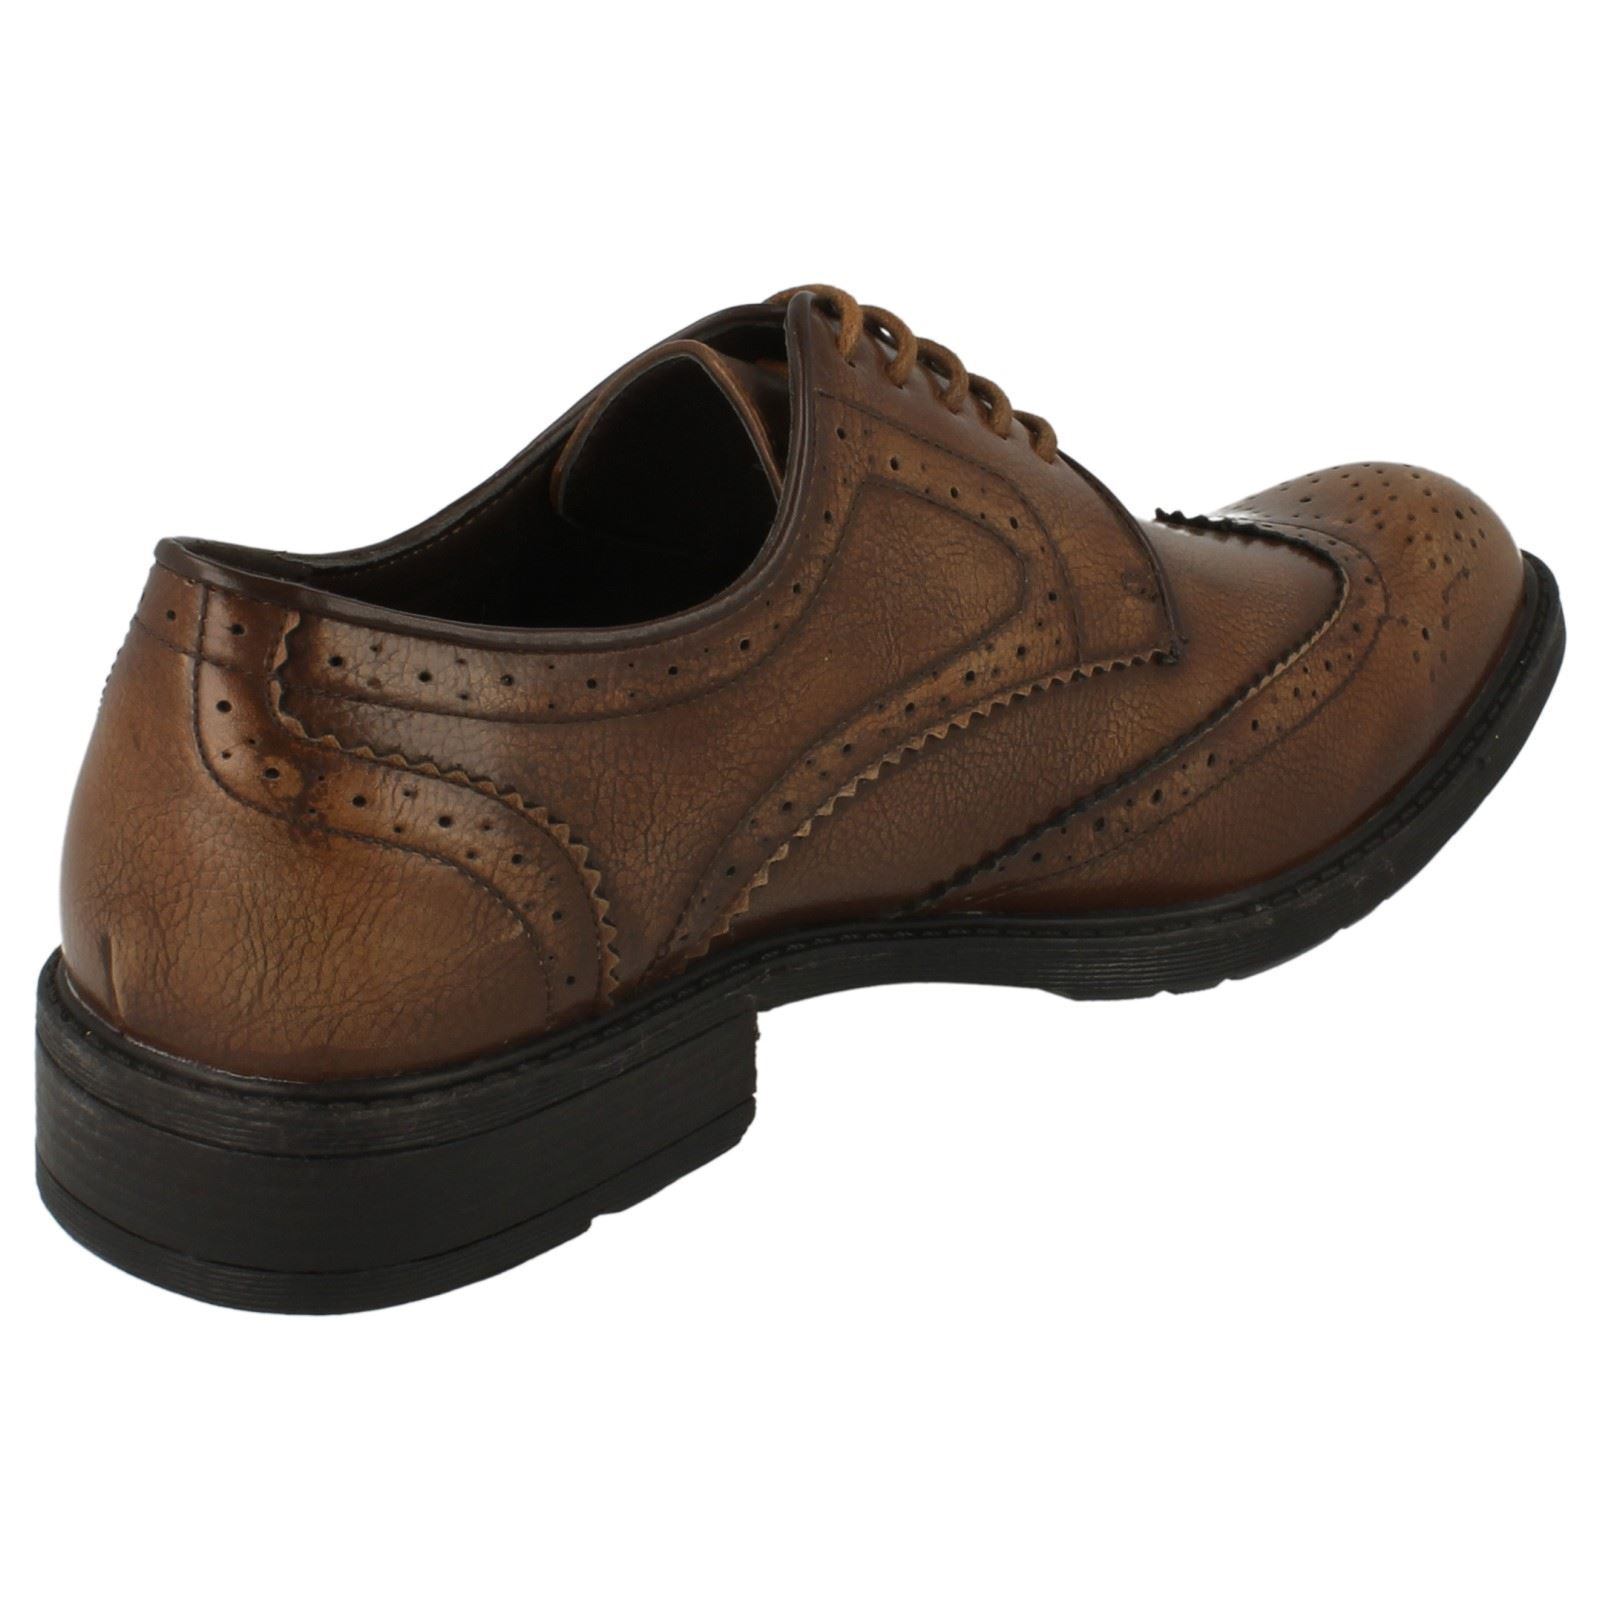 A1065 MENS MAVERICK LACE UP ROUND TOE FORMAL EVERYDAY WORK SHOES